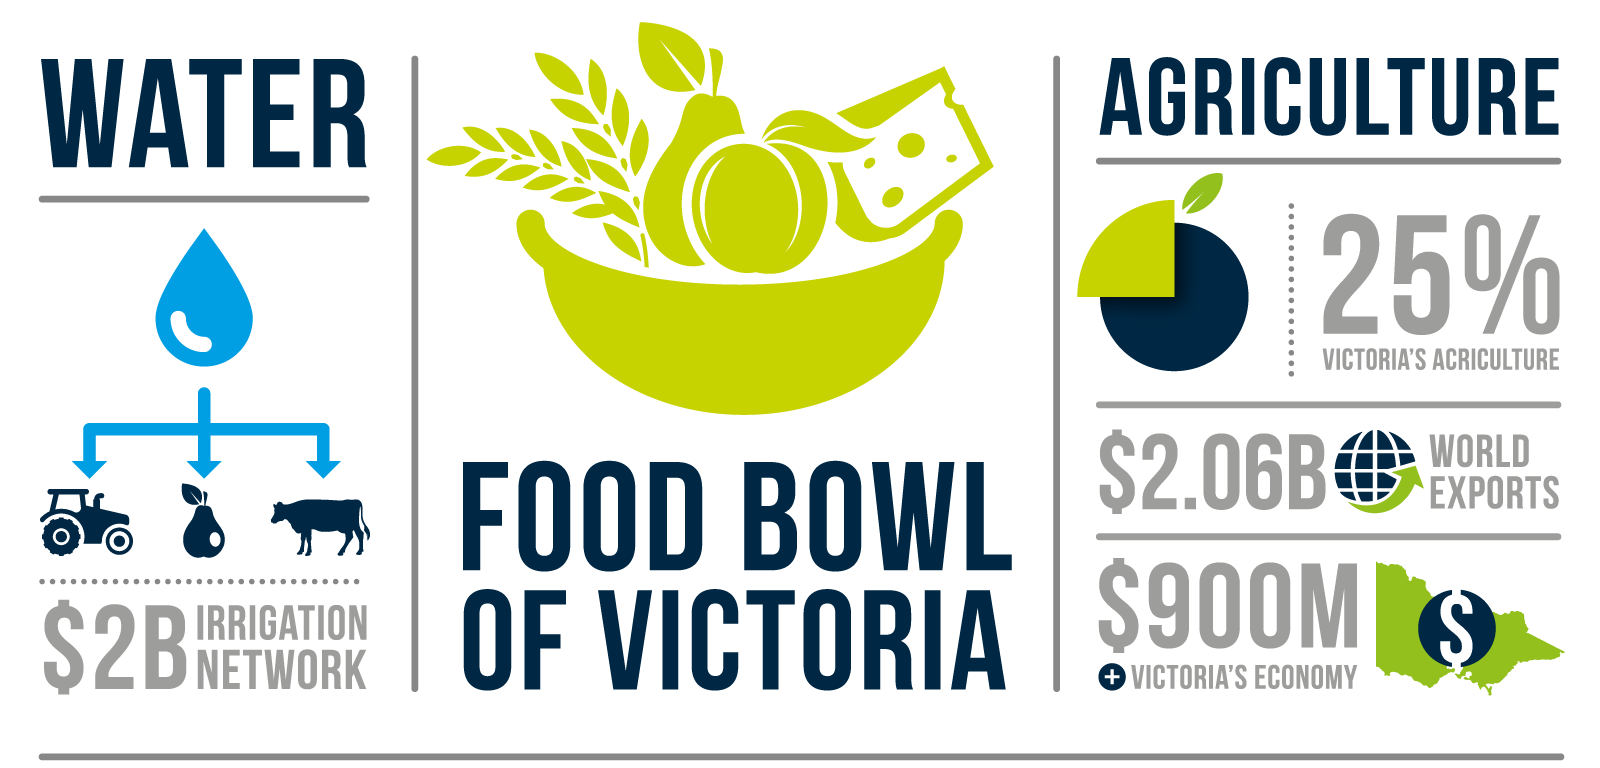 As the heart of the Foodbowl, 25% of Victoria's agriculture is produced here contributing $900m annually to the Victorian economy and $2.06b in exports. $2b investment into our state of the art, world class irrigation delivery system.